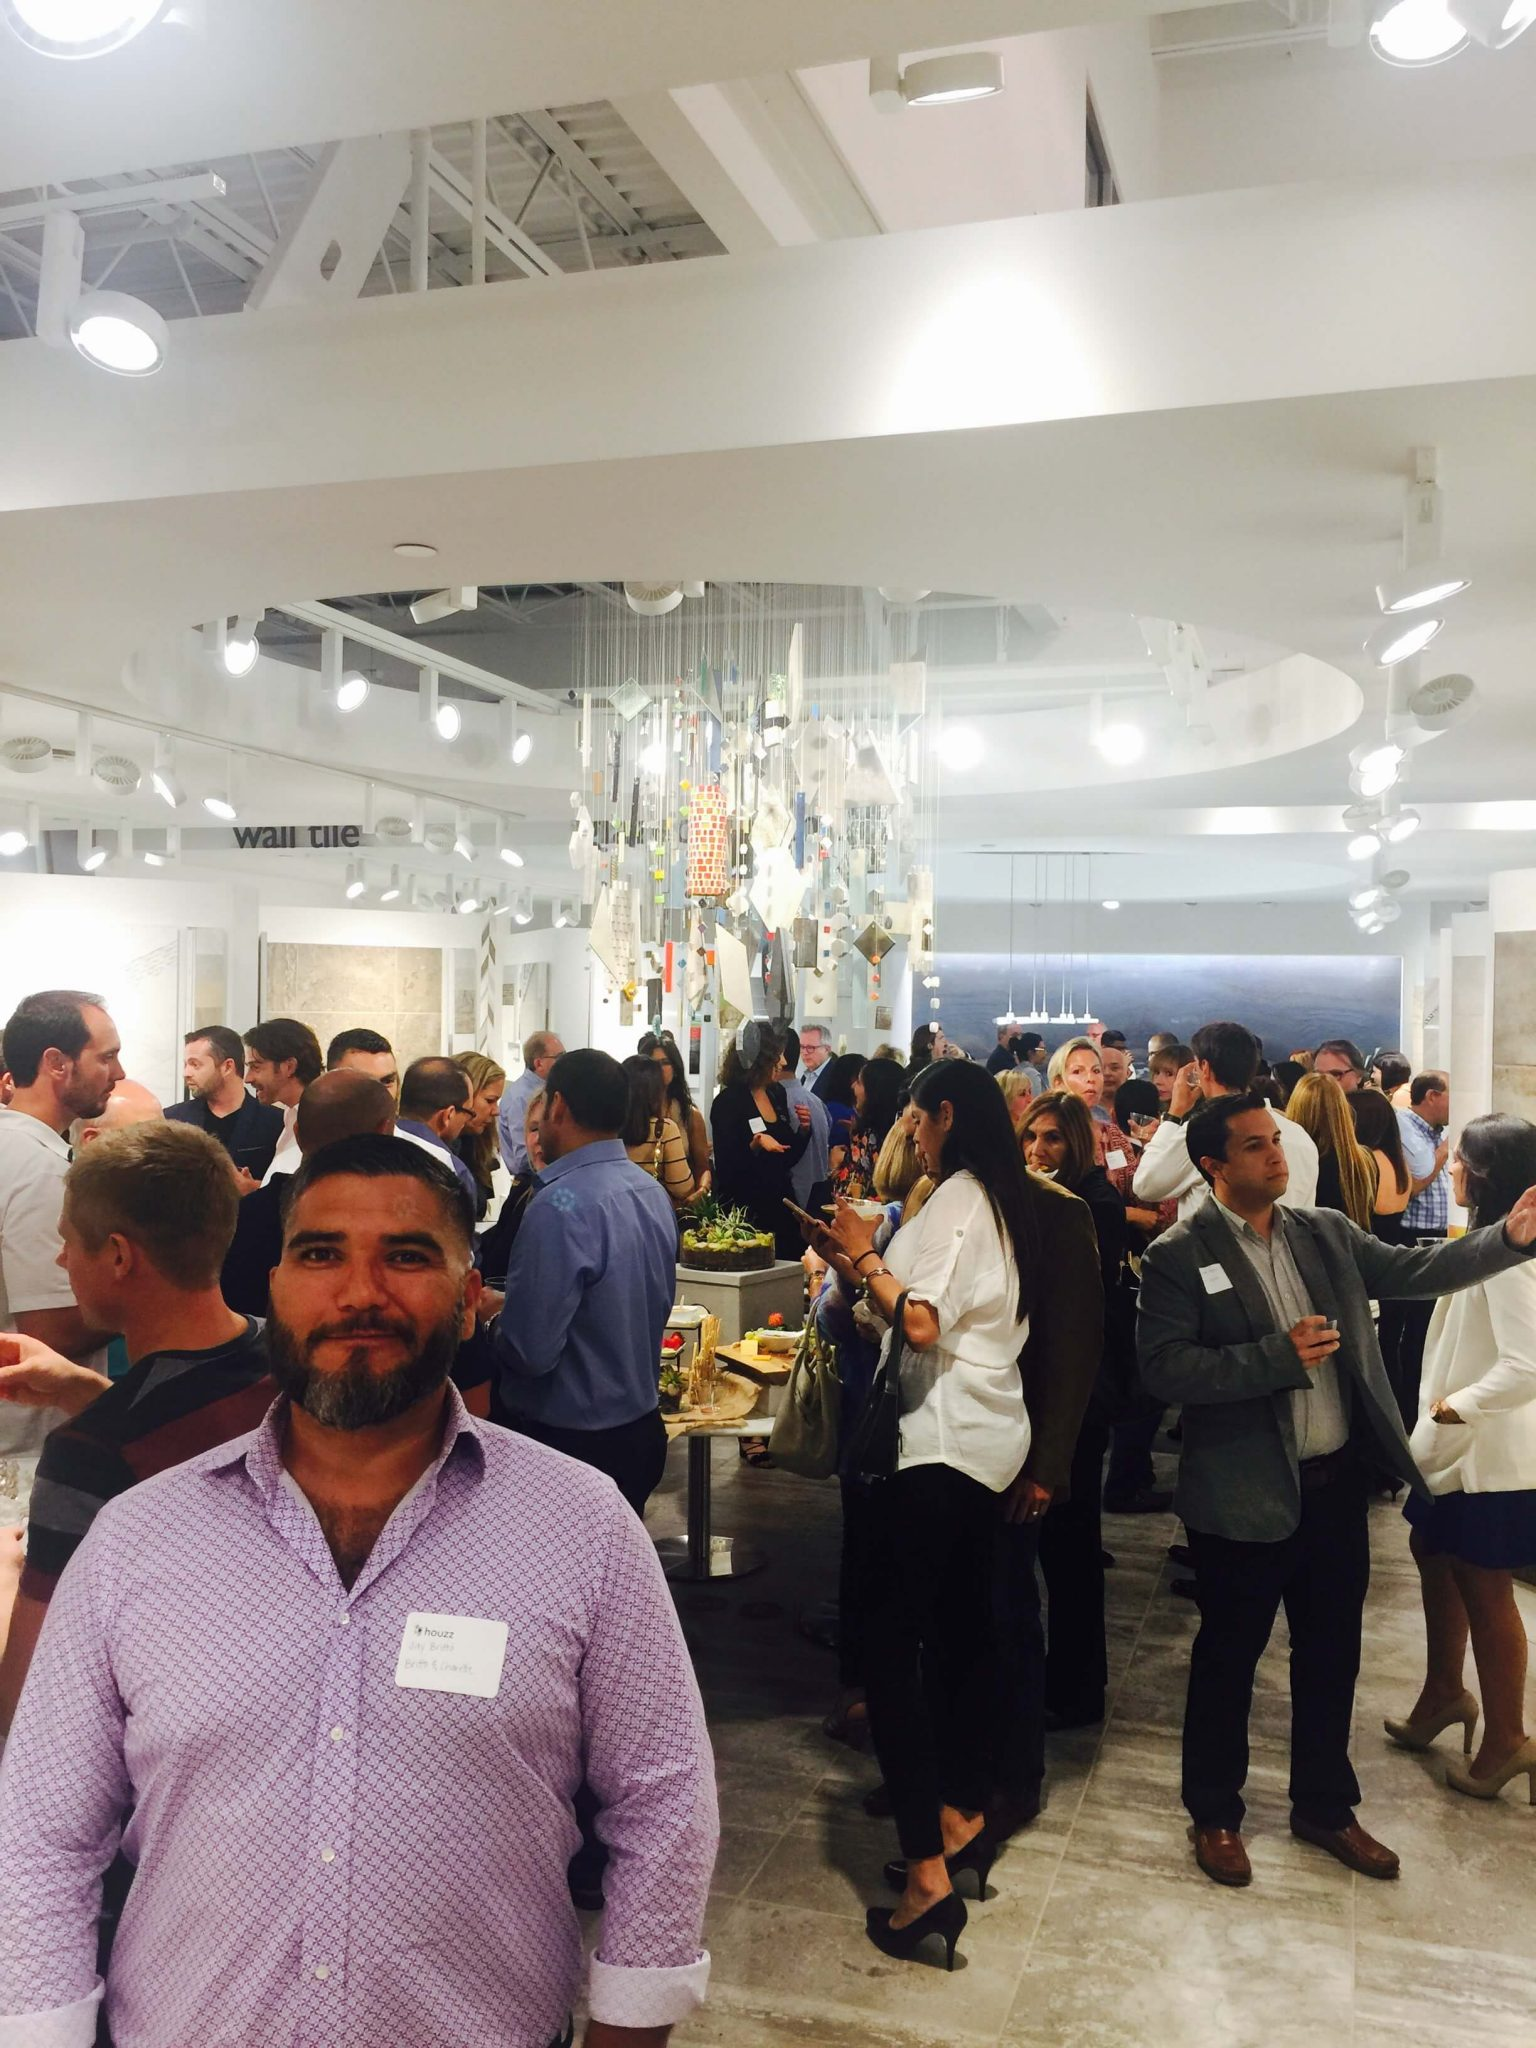 jay-at-houzz-event